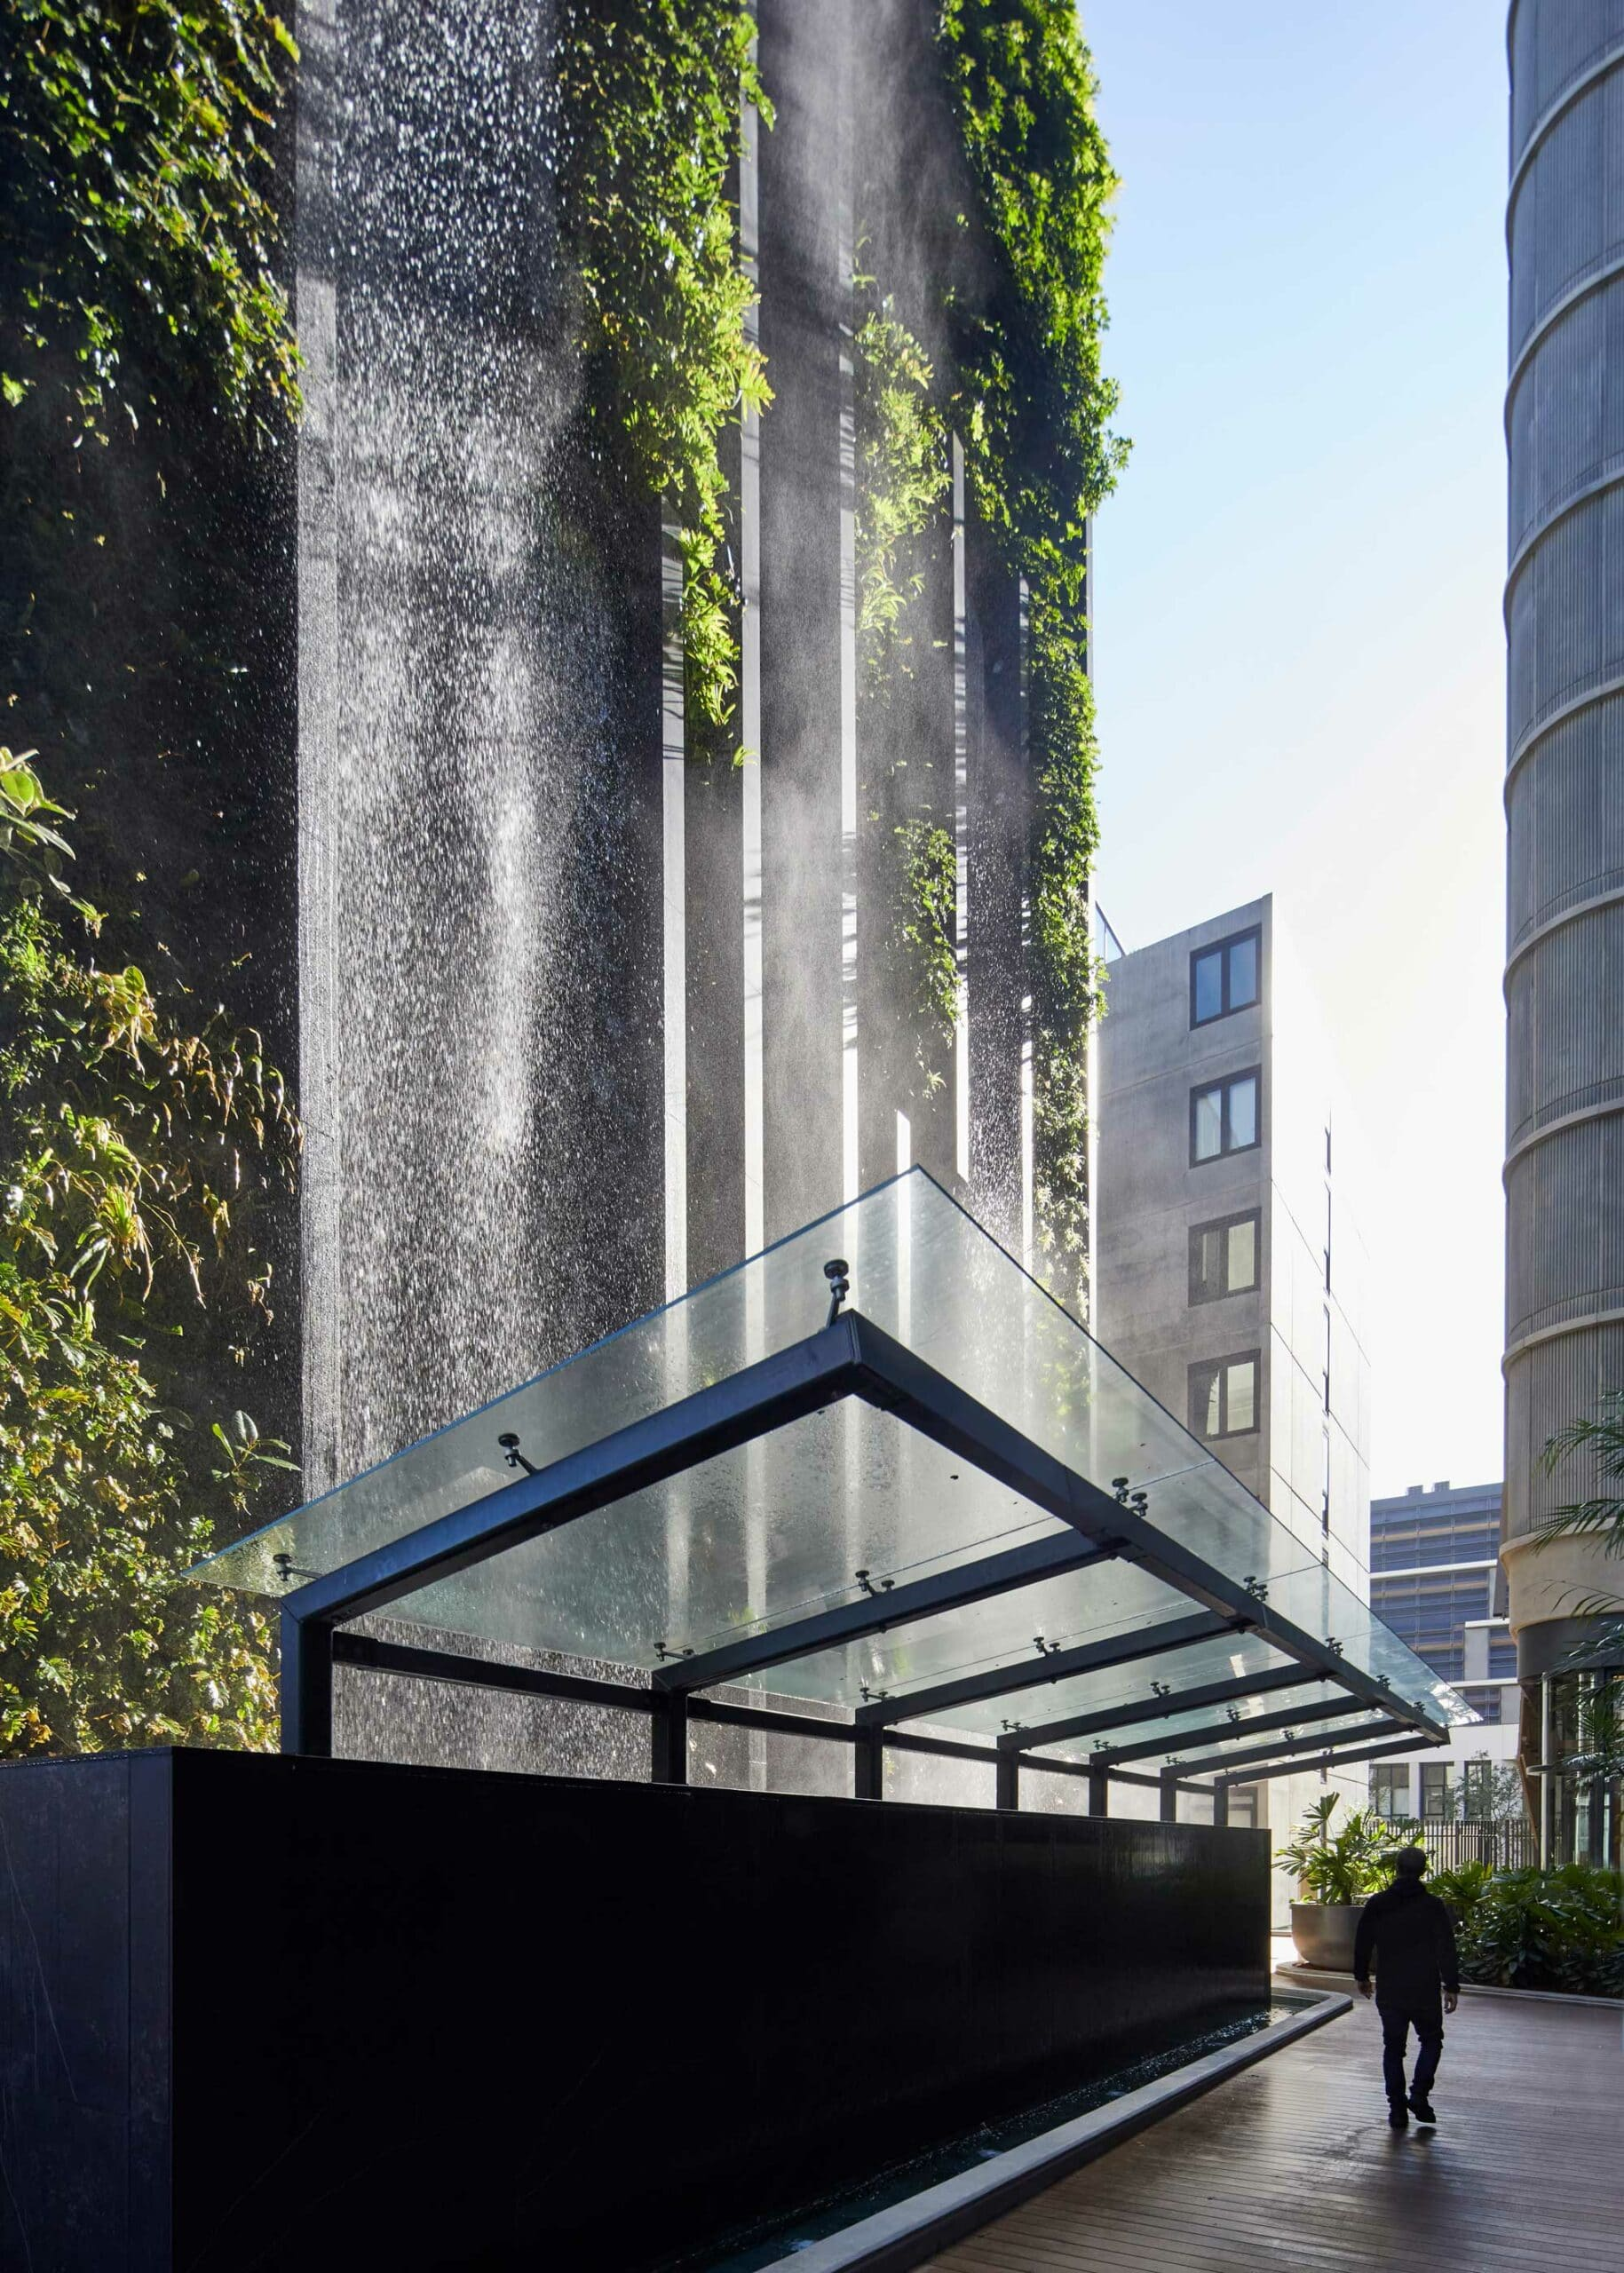 Urban waterfall  - Waterfall Dekton 1 scaled 57